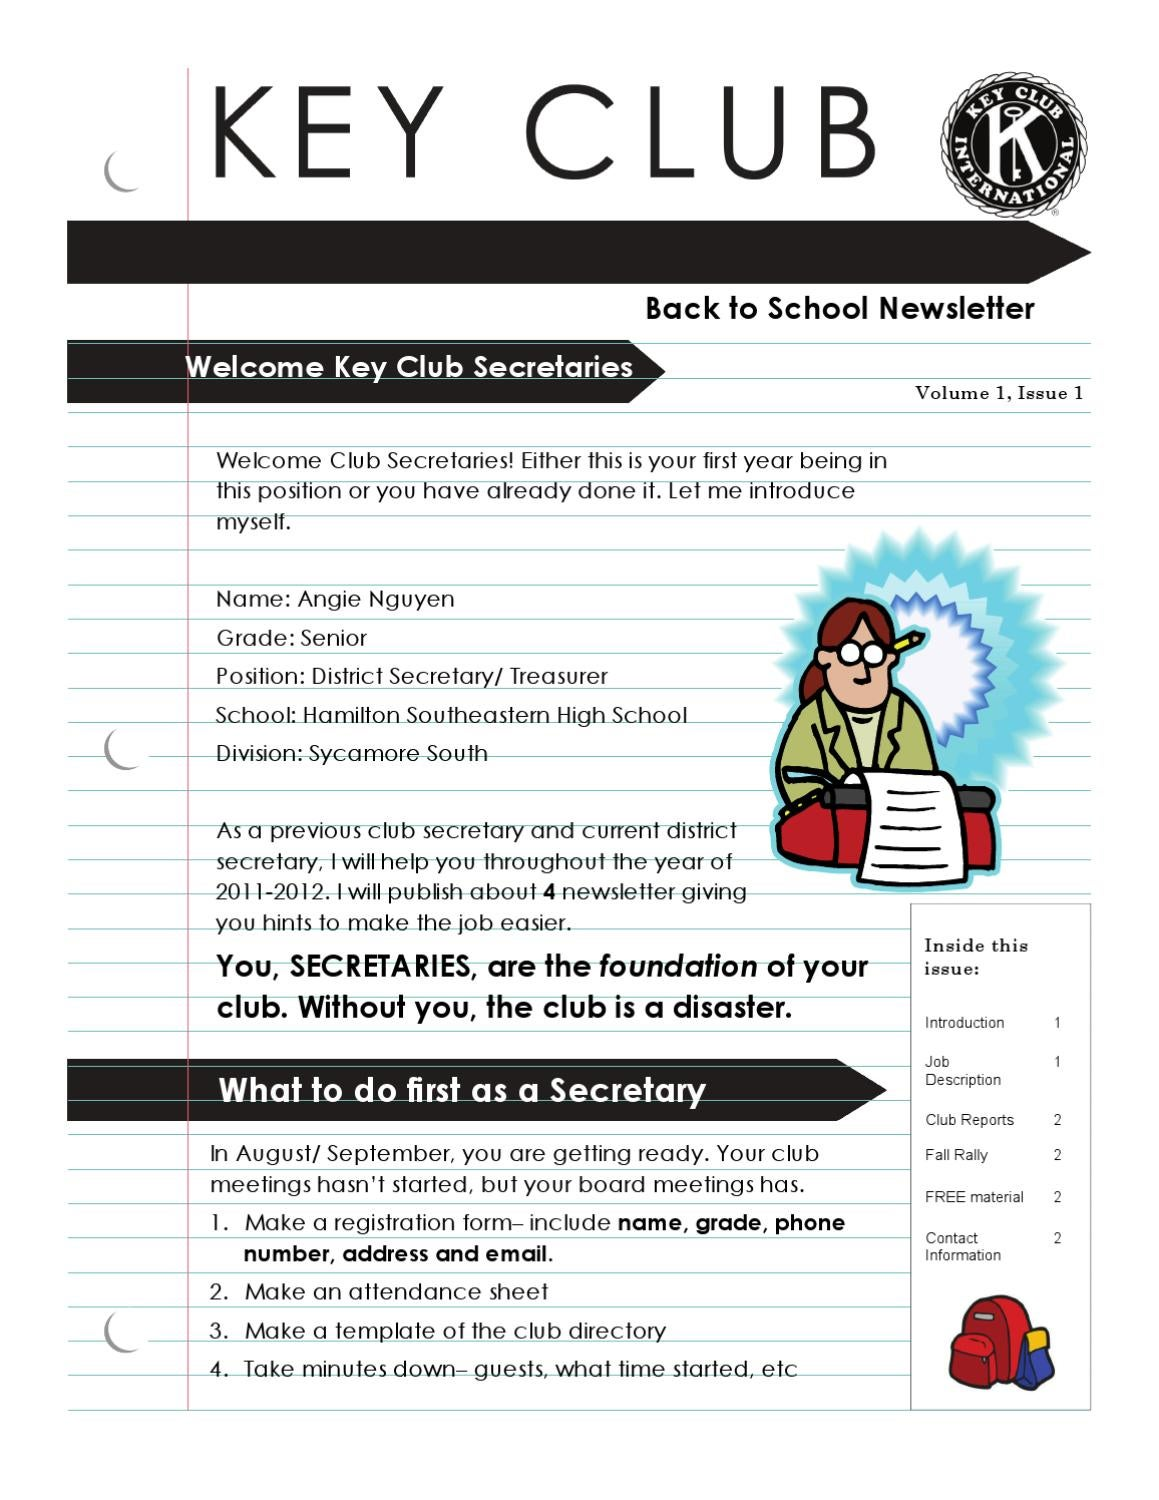 Club Secretary Back To School Newsletter By Angie Nguyen